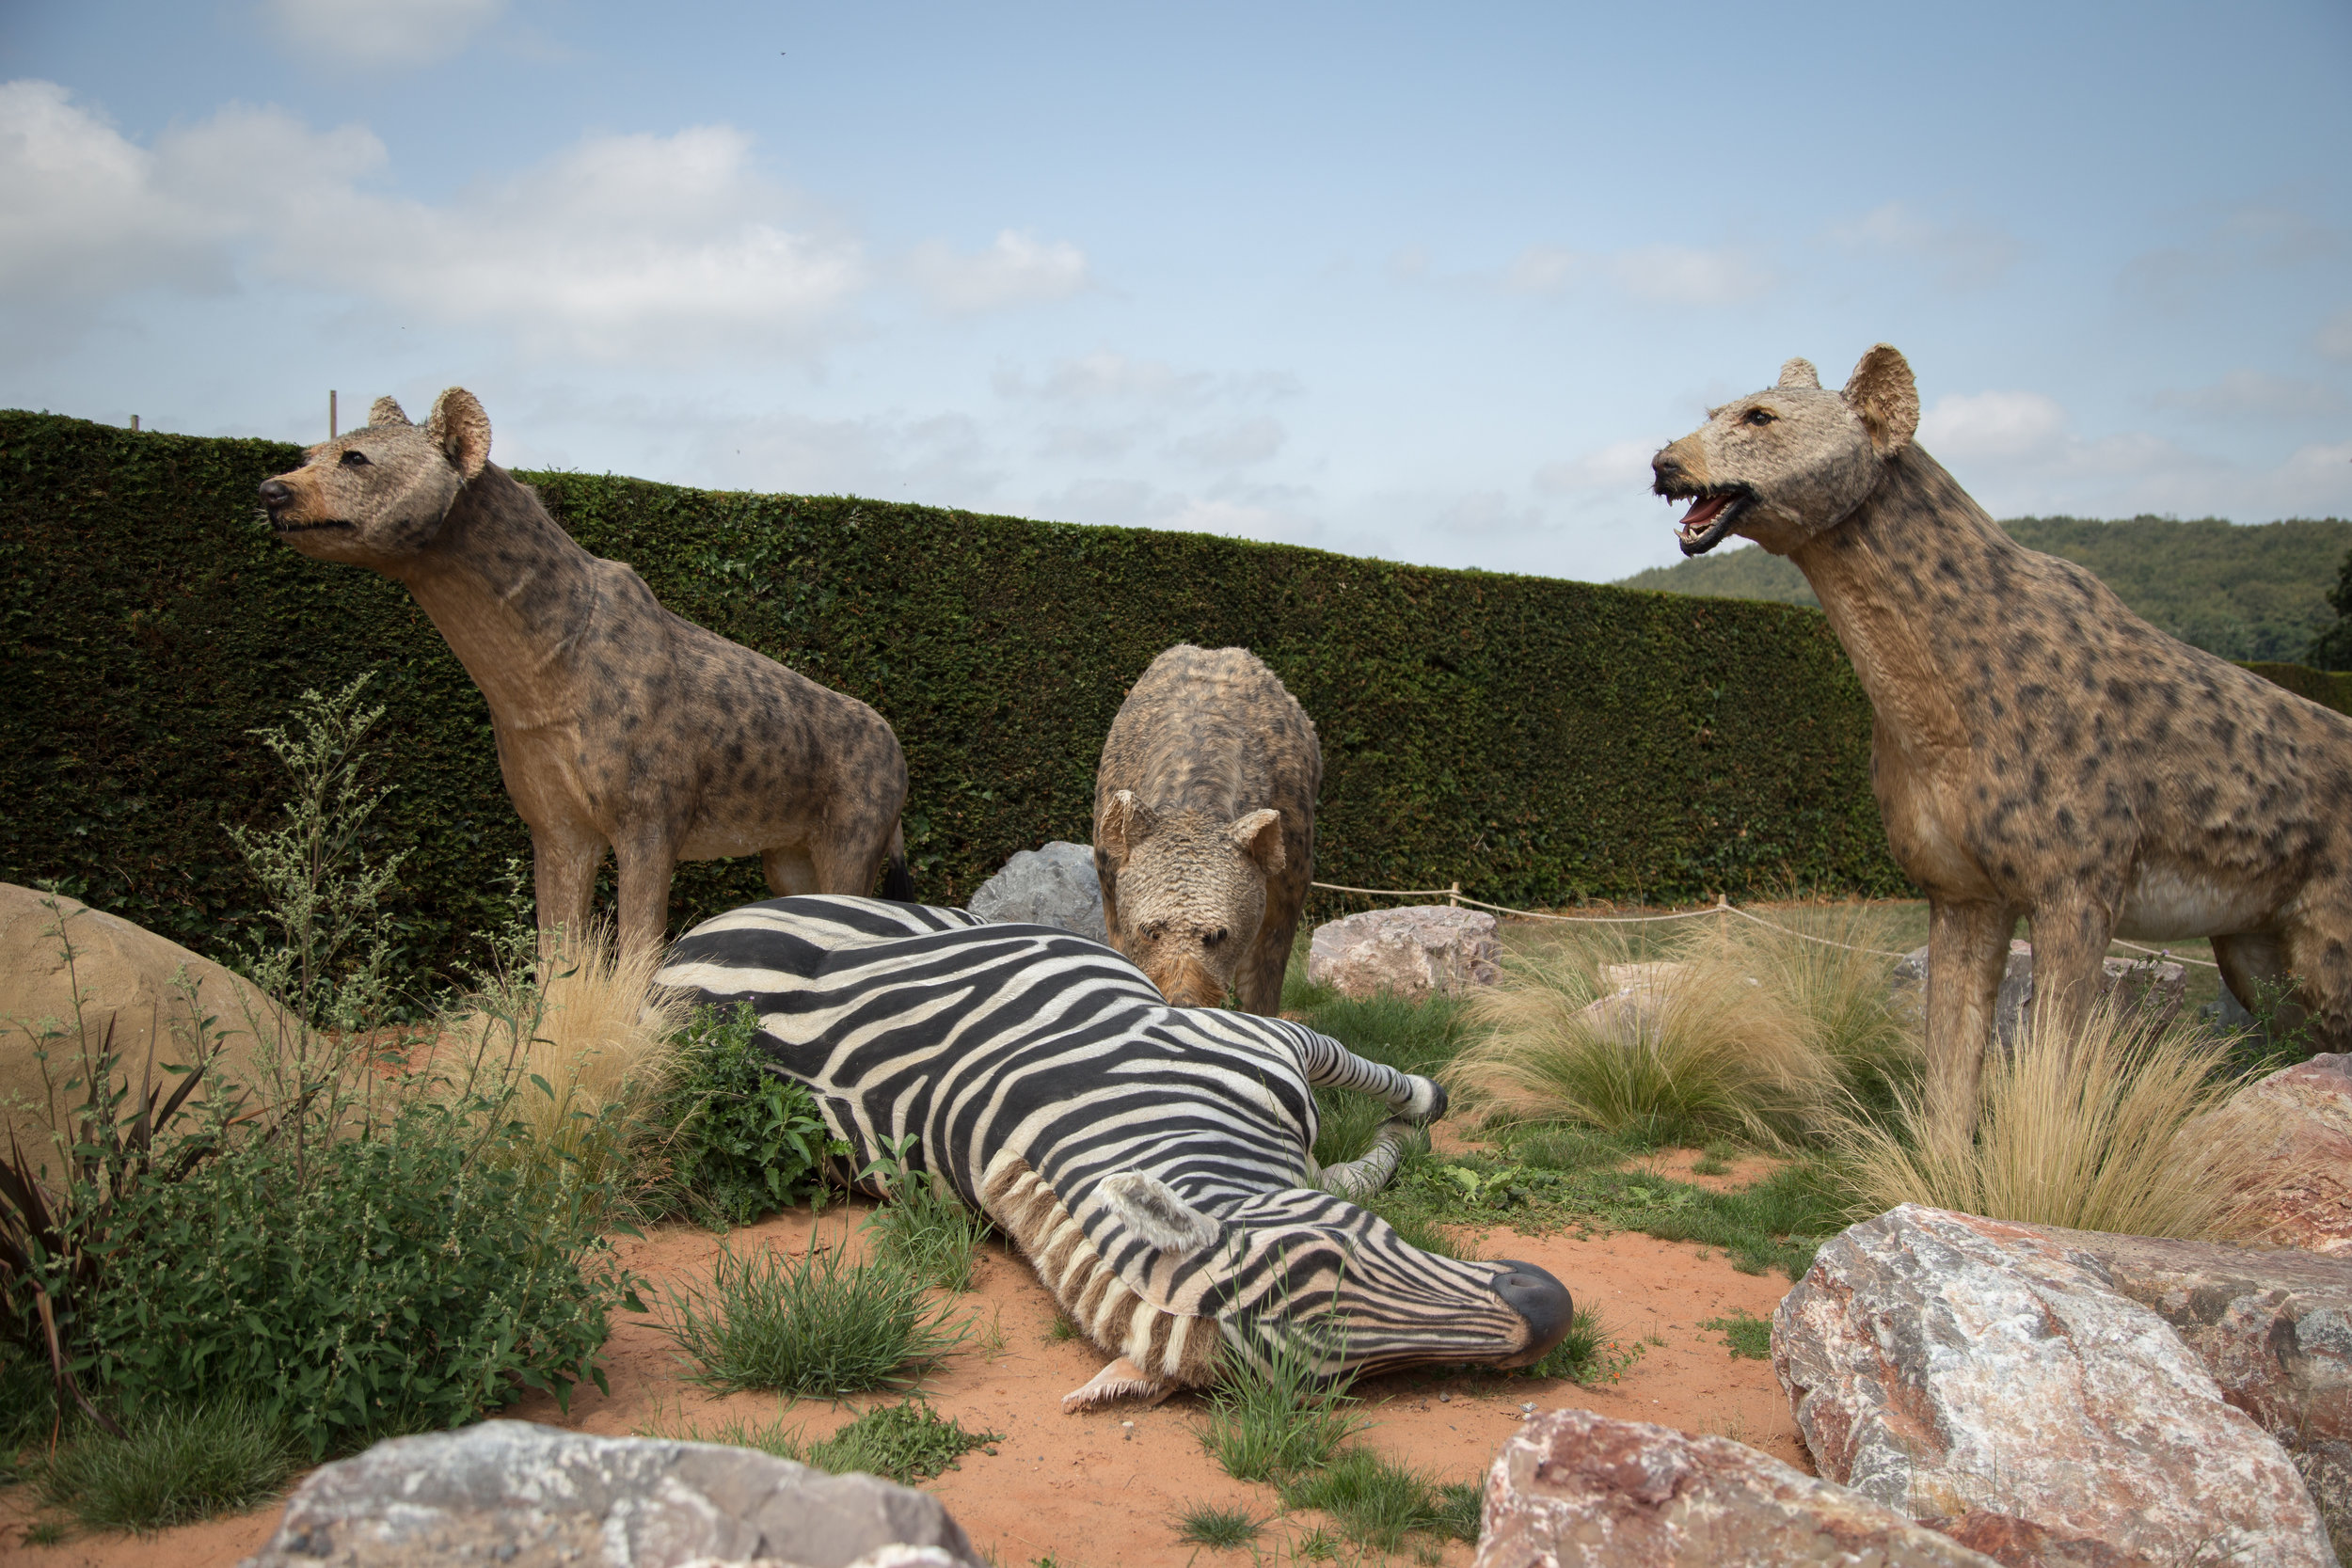 Electrical works carried out at the Predators exhibition at Longleat